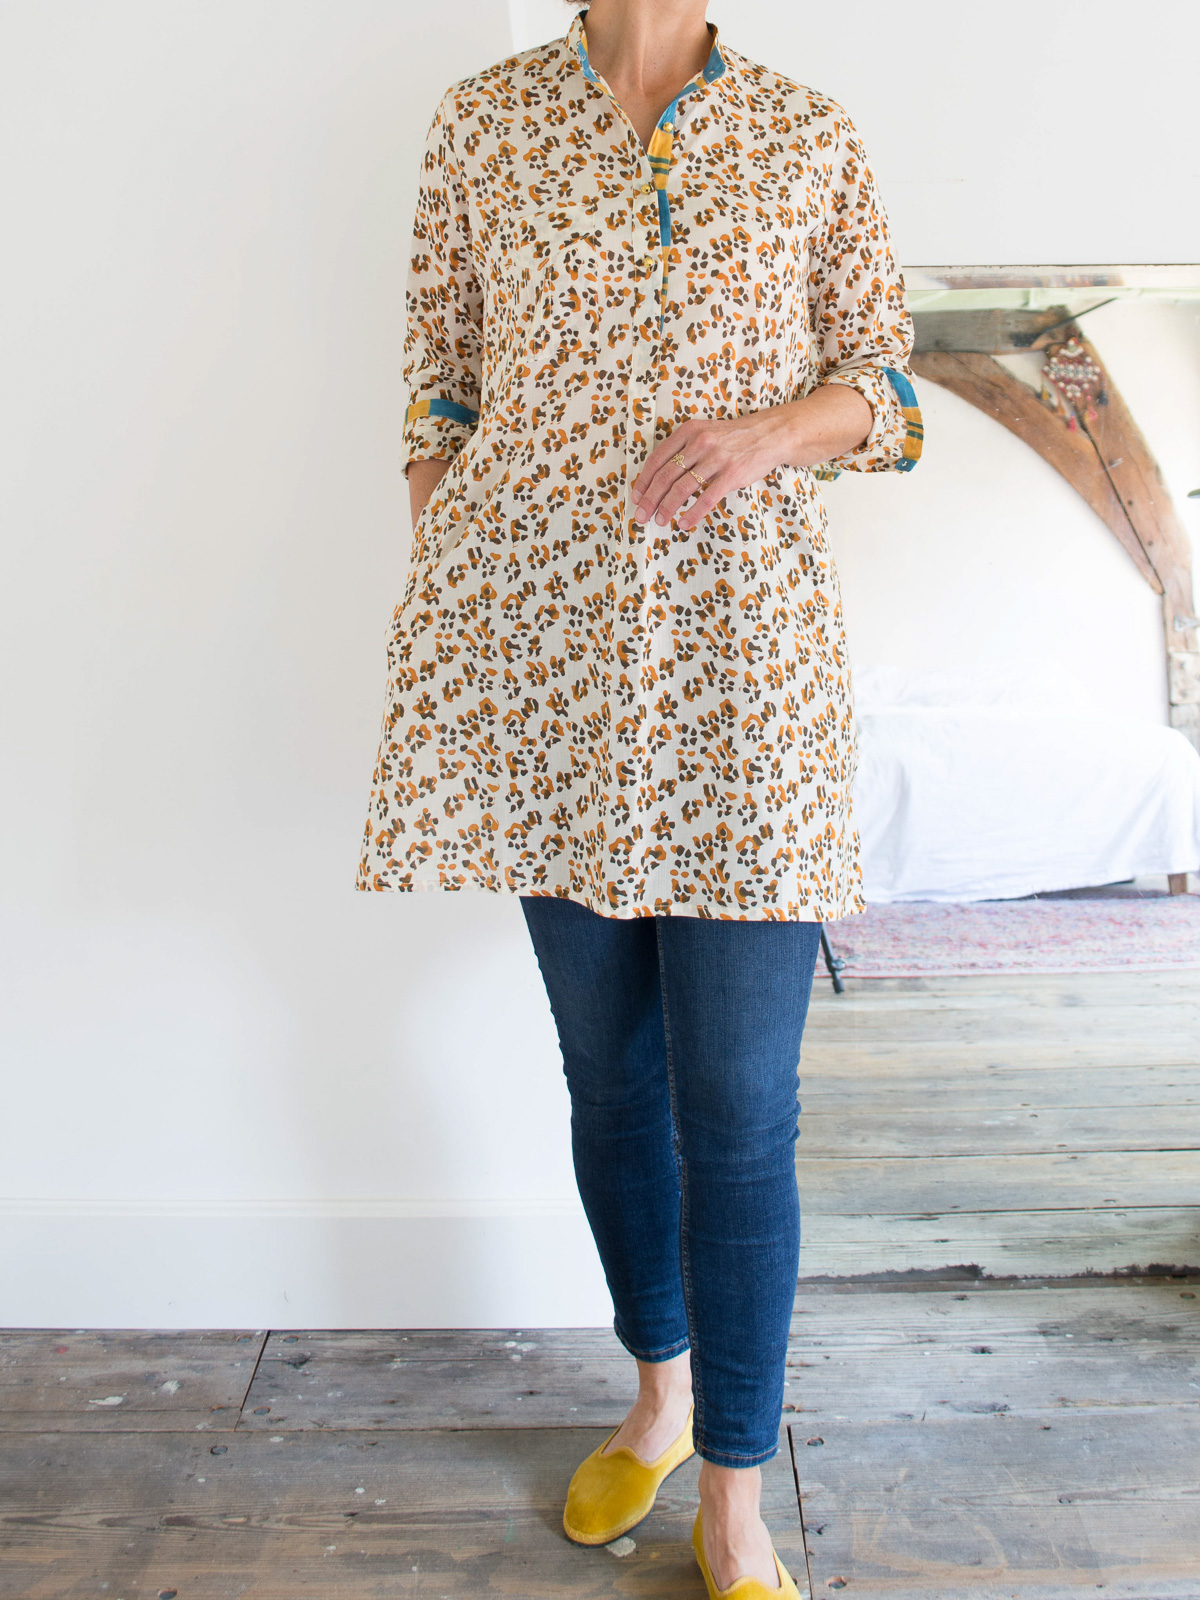 short kurta - cream with brown and ocher 'panther' pattern